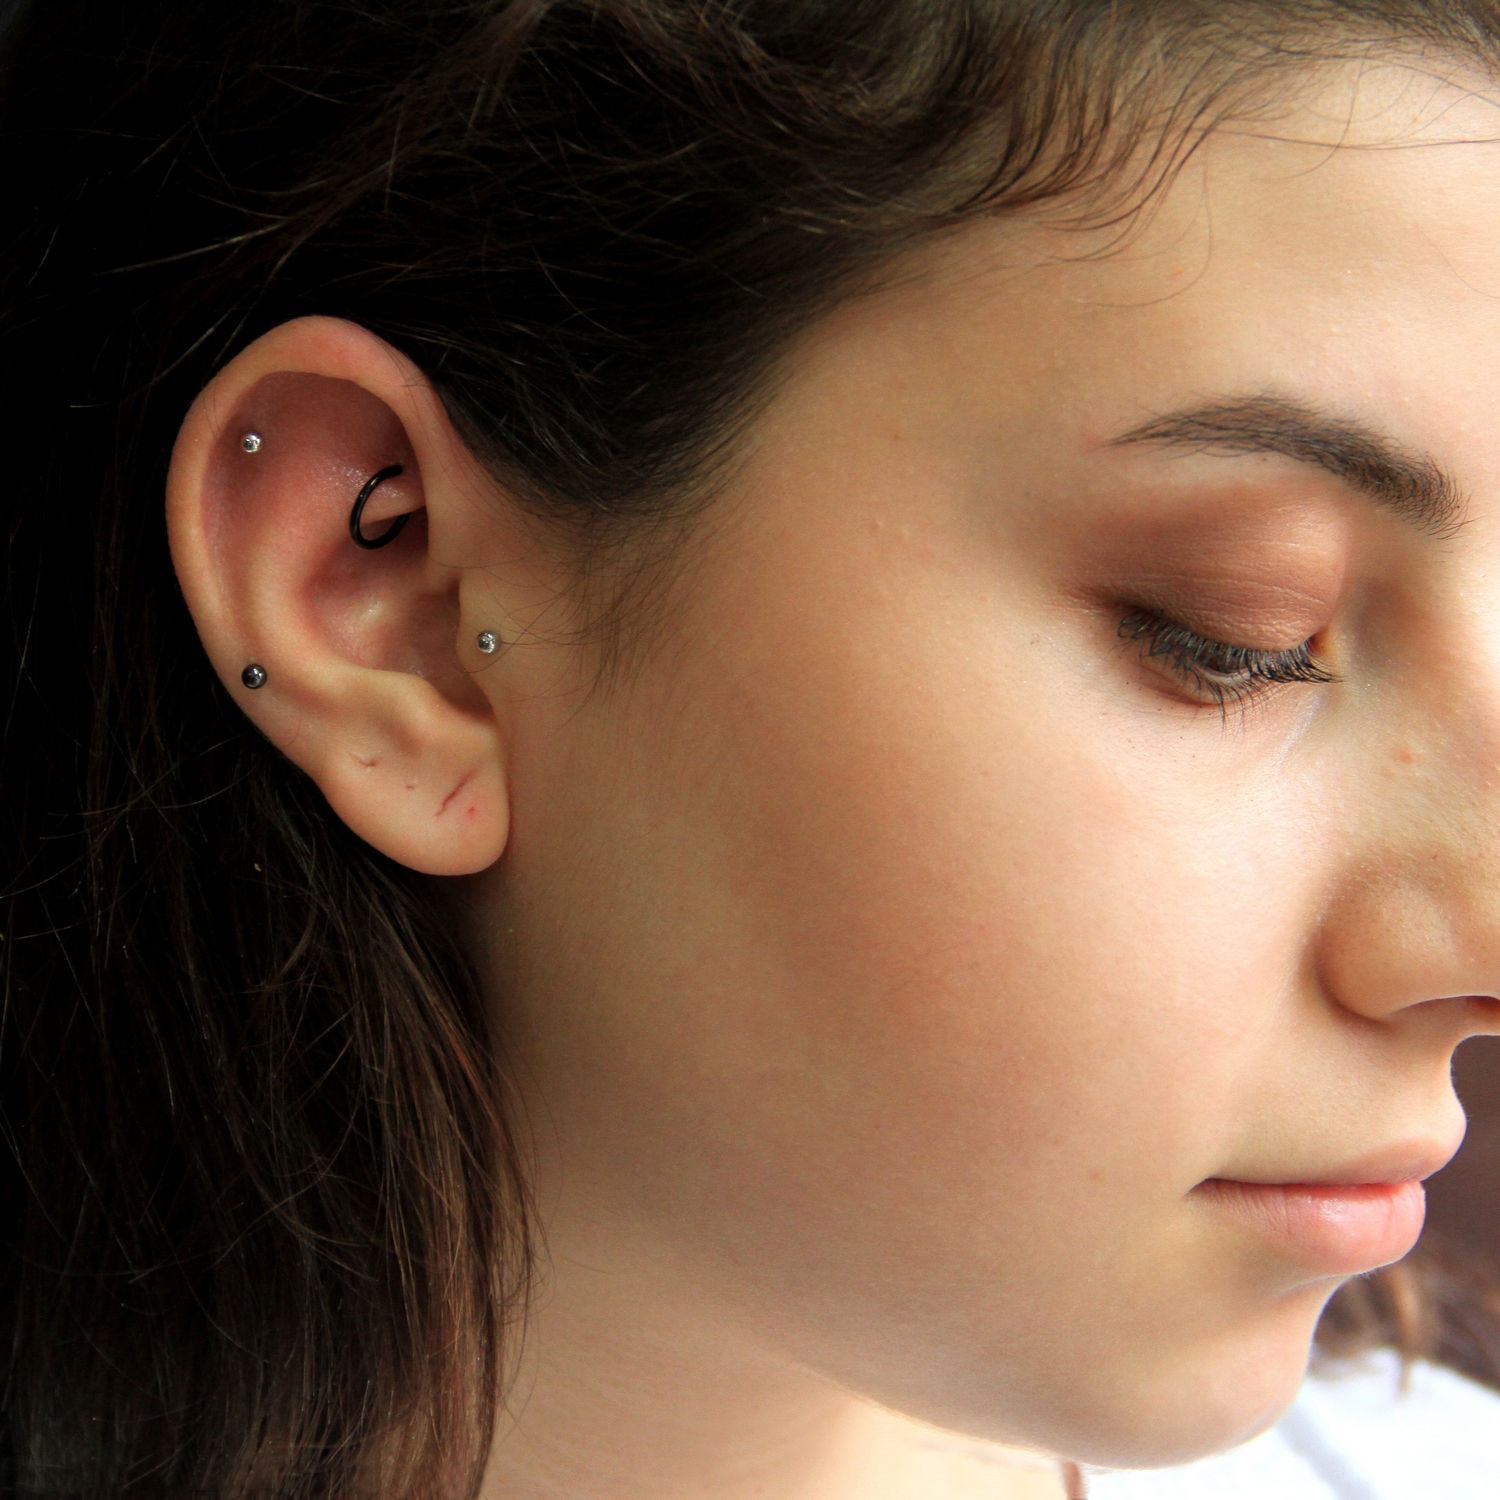 rook,helix,tragus,piercing,istanbul